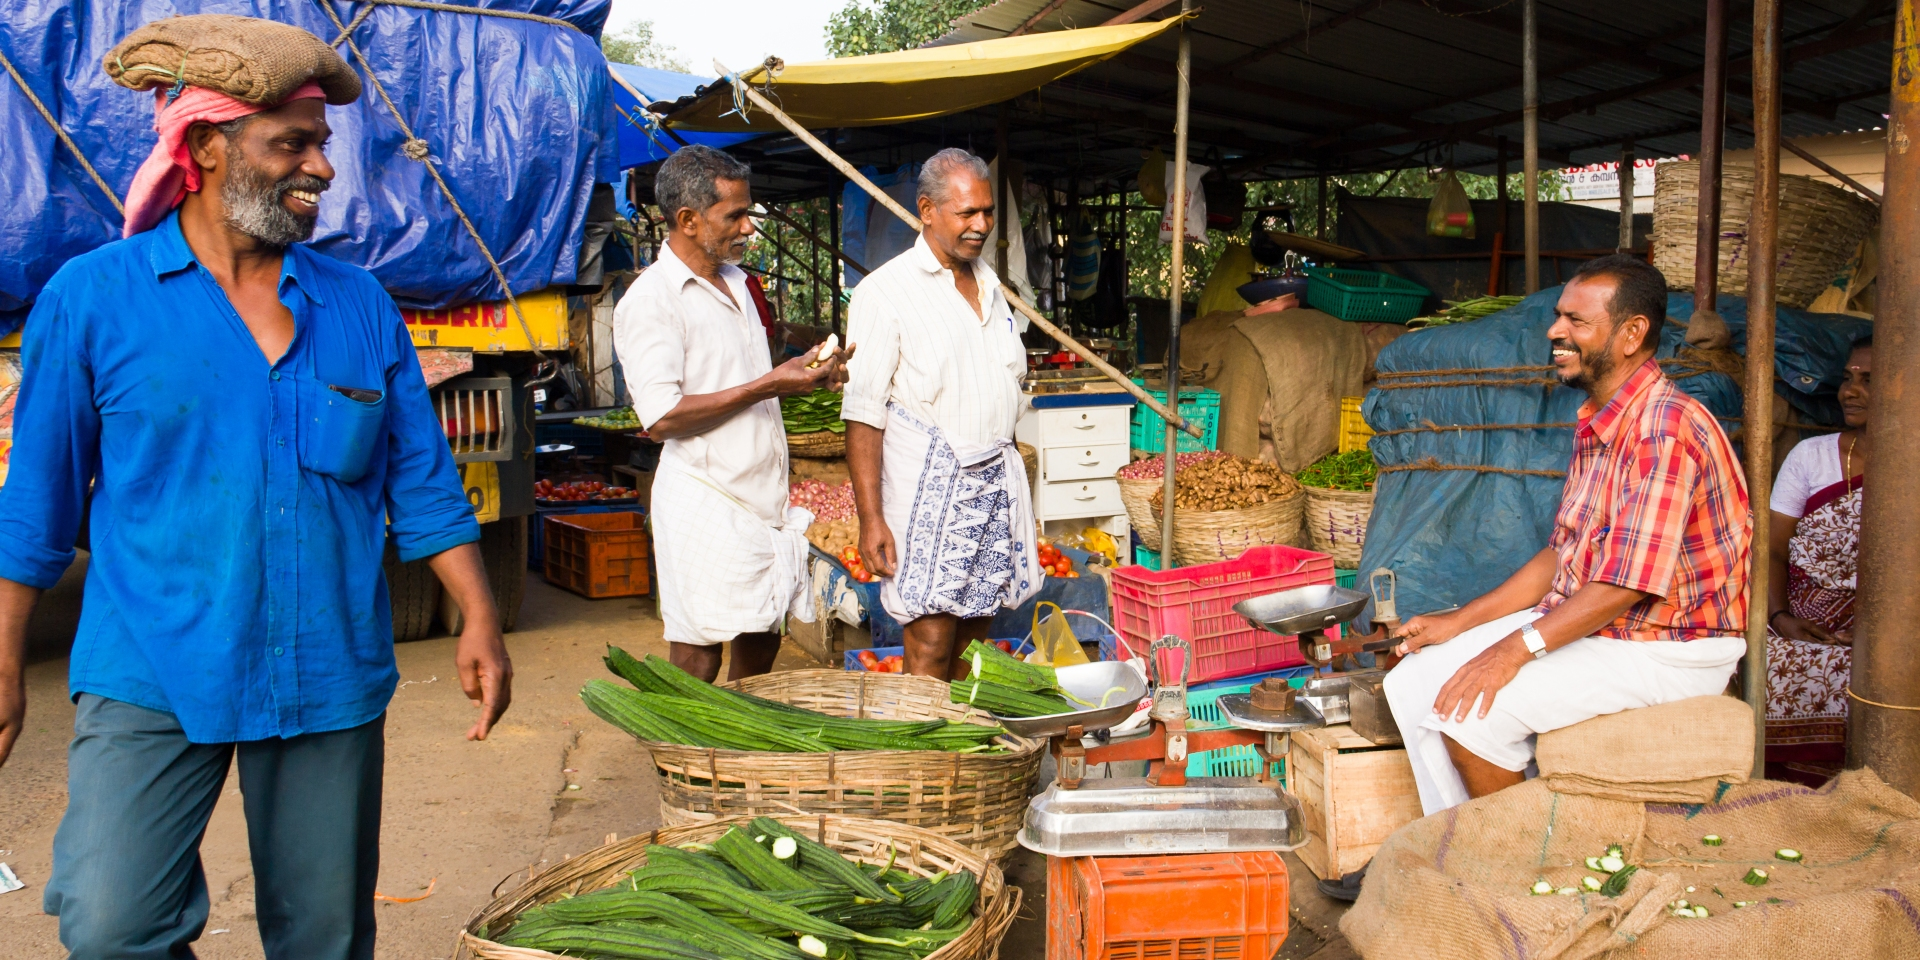 Experience Kerala through it's flavours and take in local markets like this one